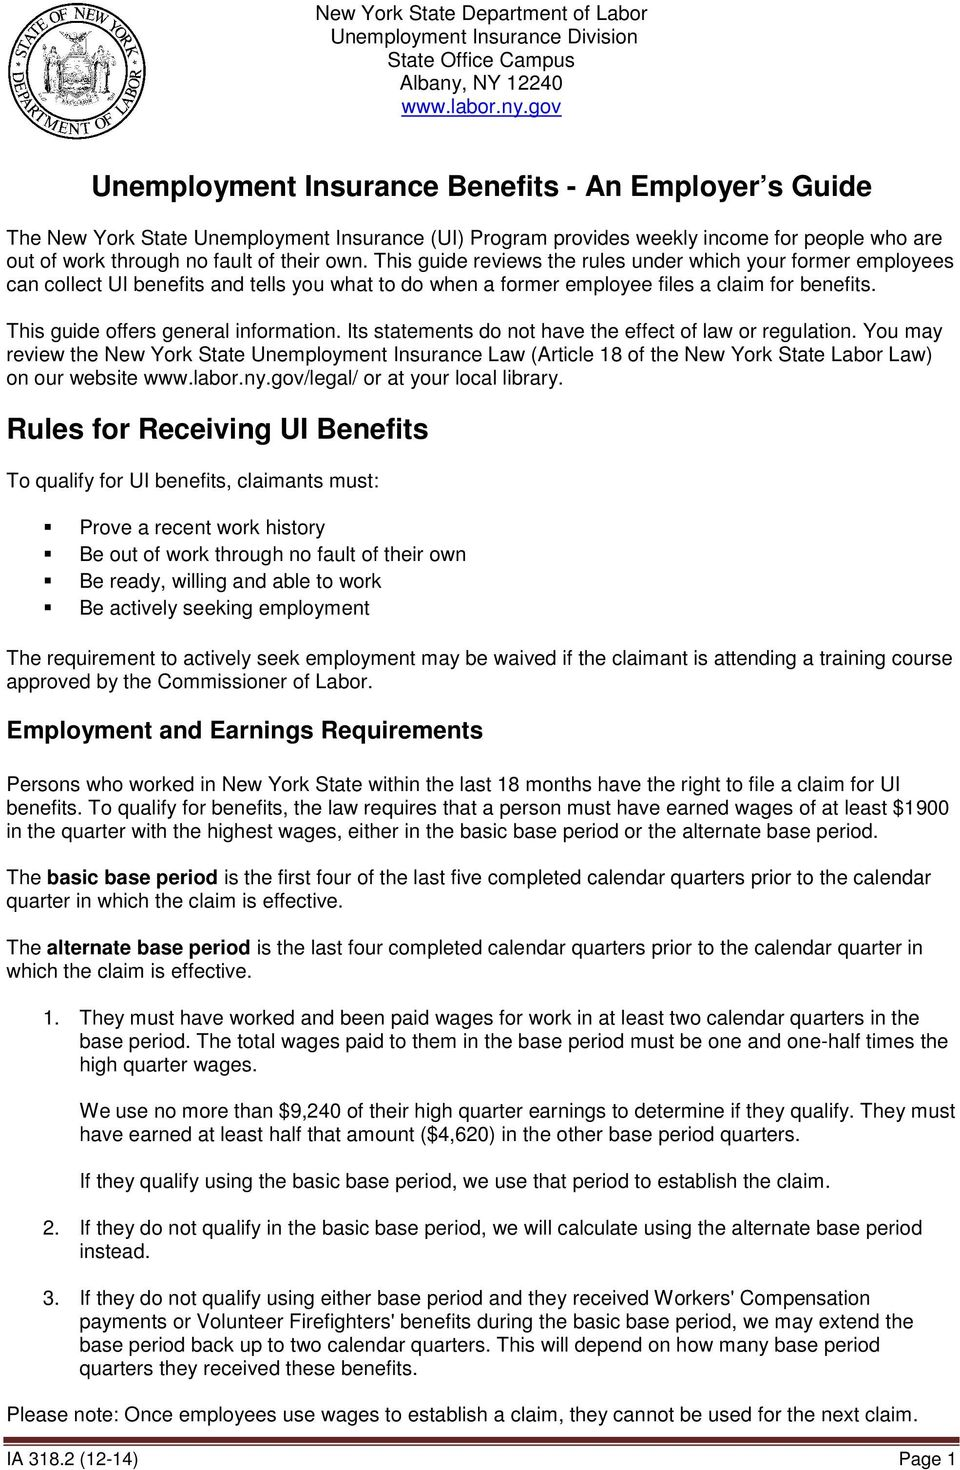 gov Unemployment Insurance Benefits - An Employer s Guide The New York State Unemployment Insurance (UI) Program provides weekly income for people who are out of work through no fault of their own.